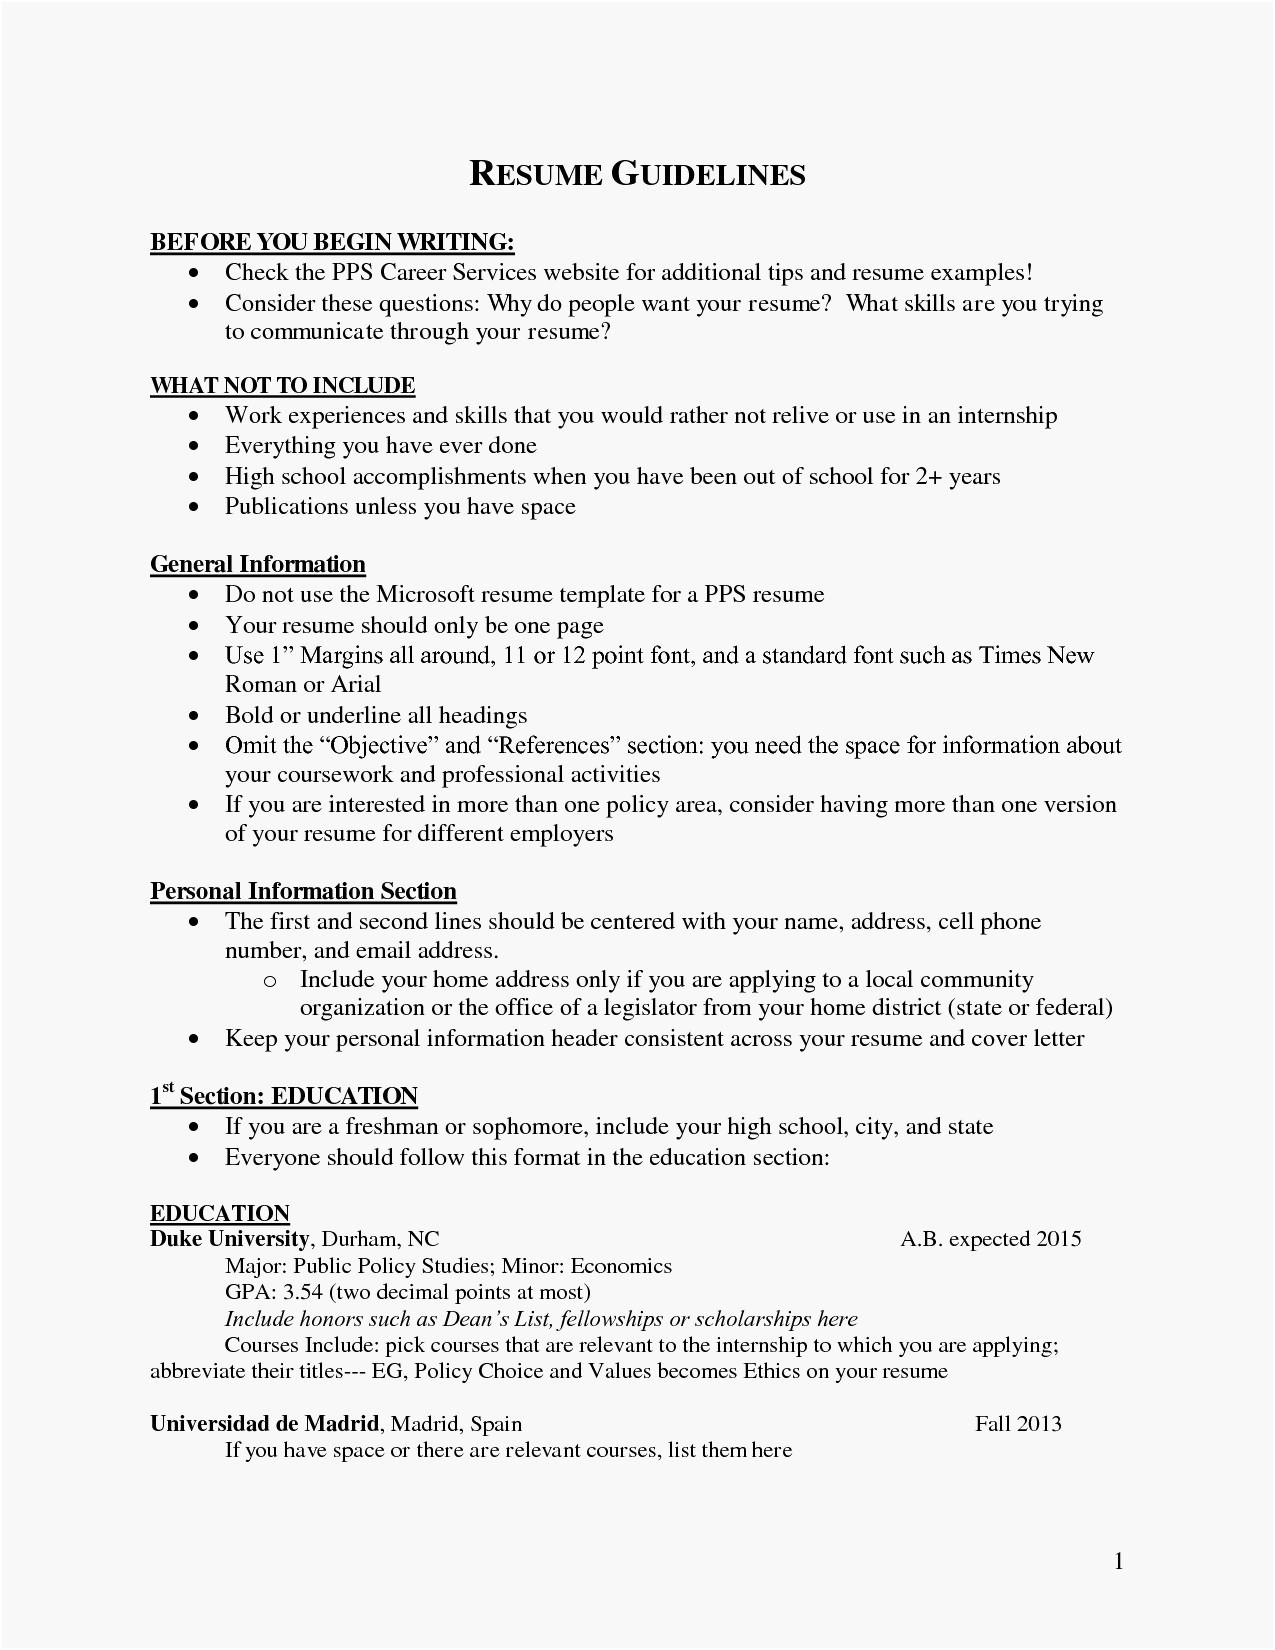 Non Profit Resume Templates - How to List Gpa Resume 30 Resumes for Non Profit Free Resume